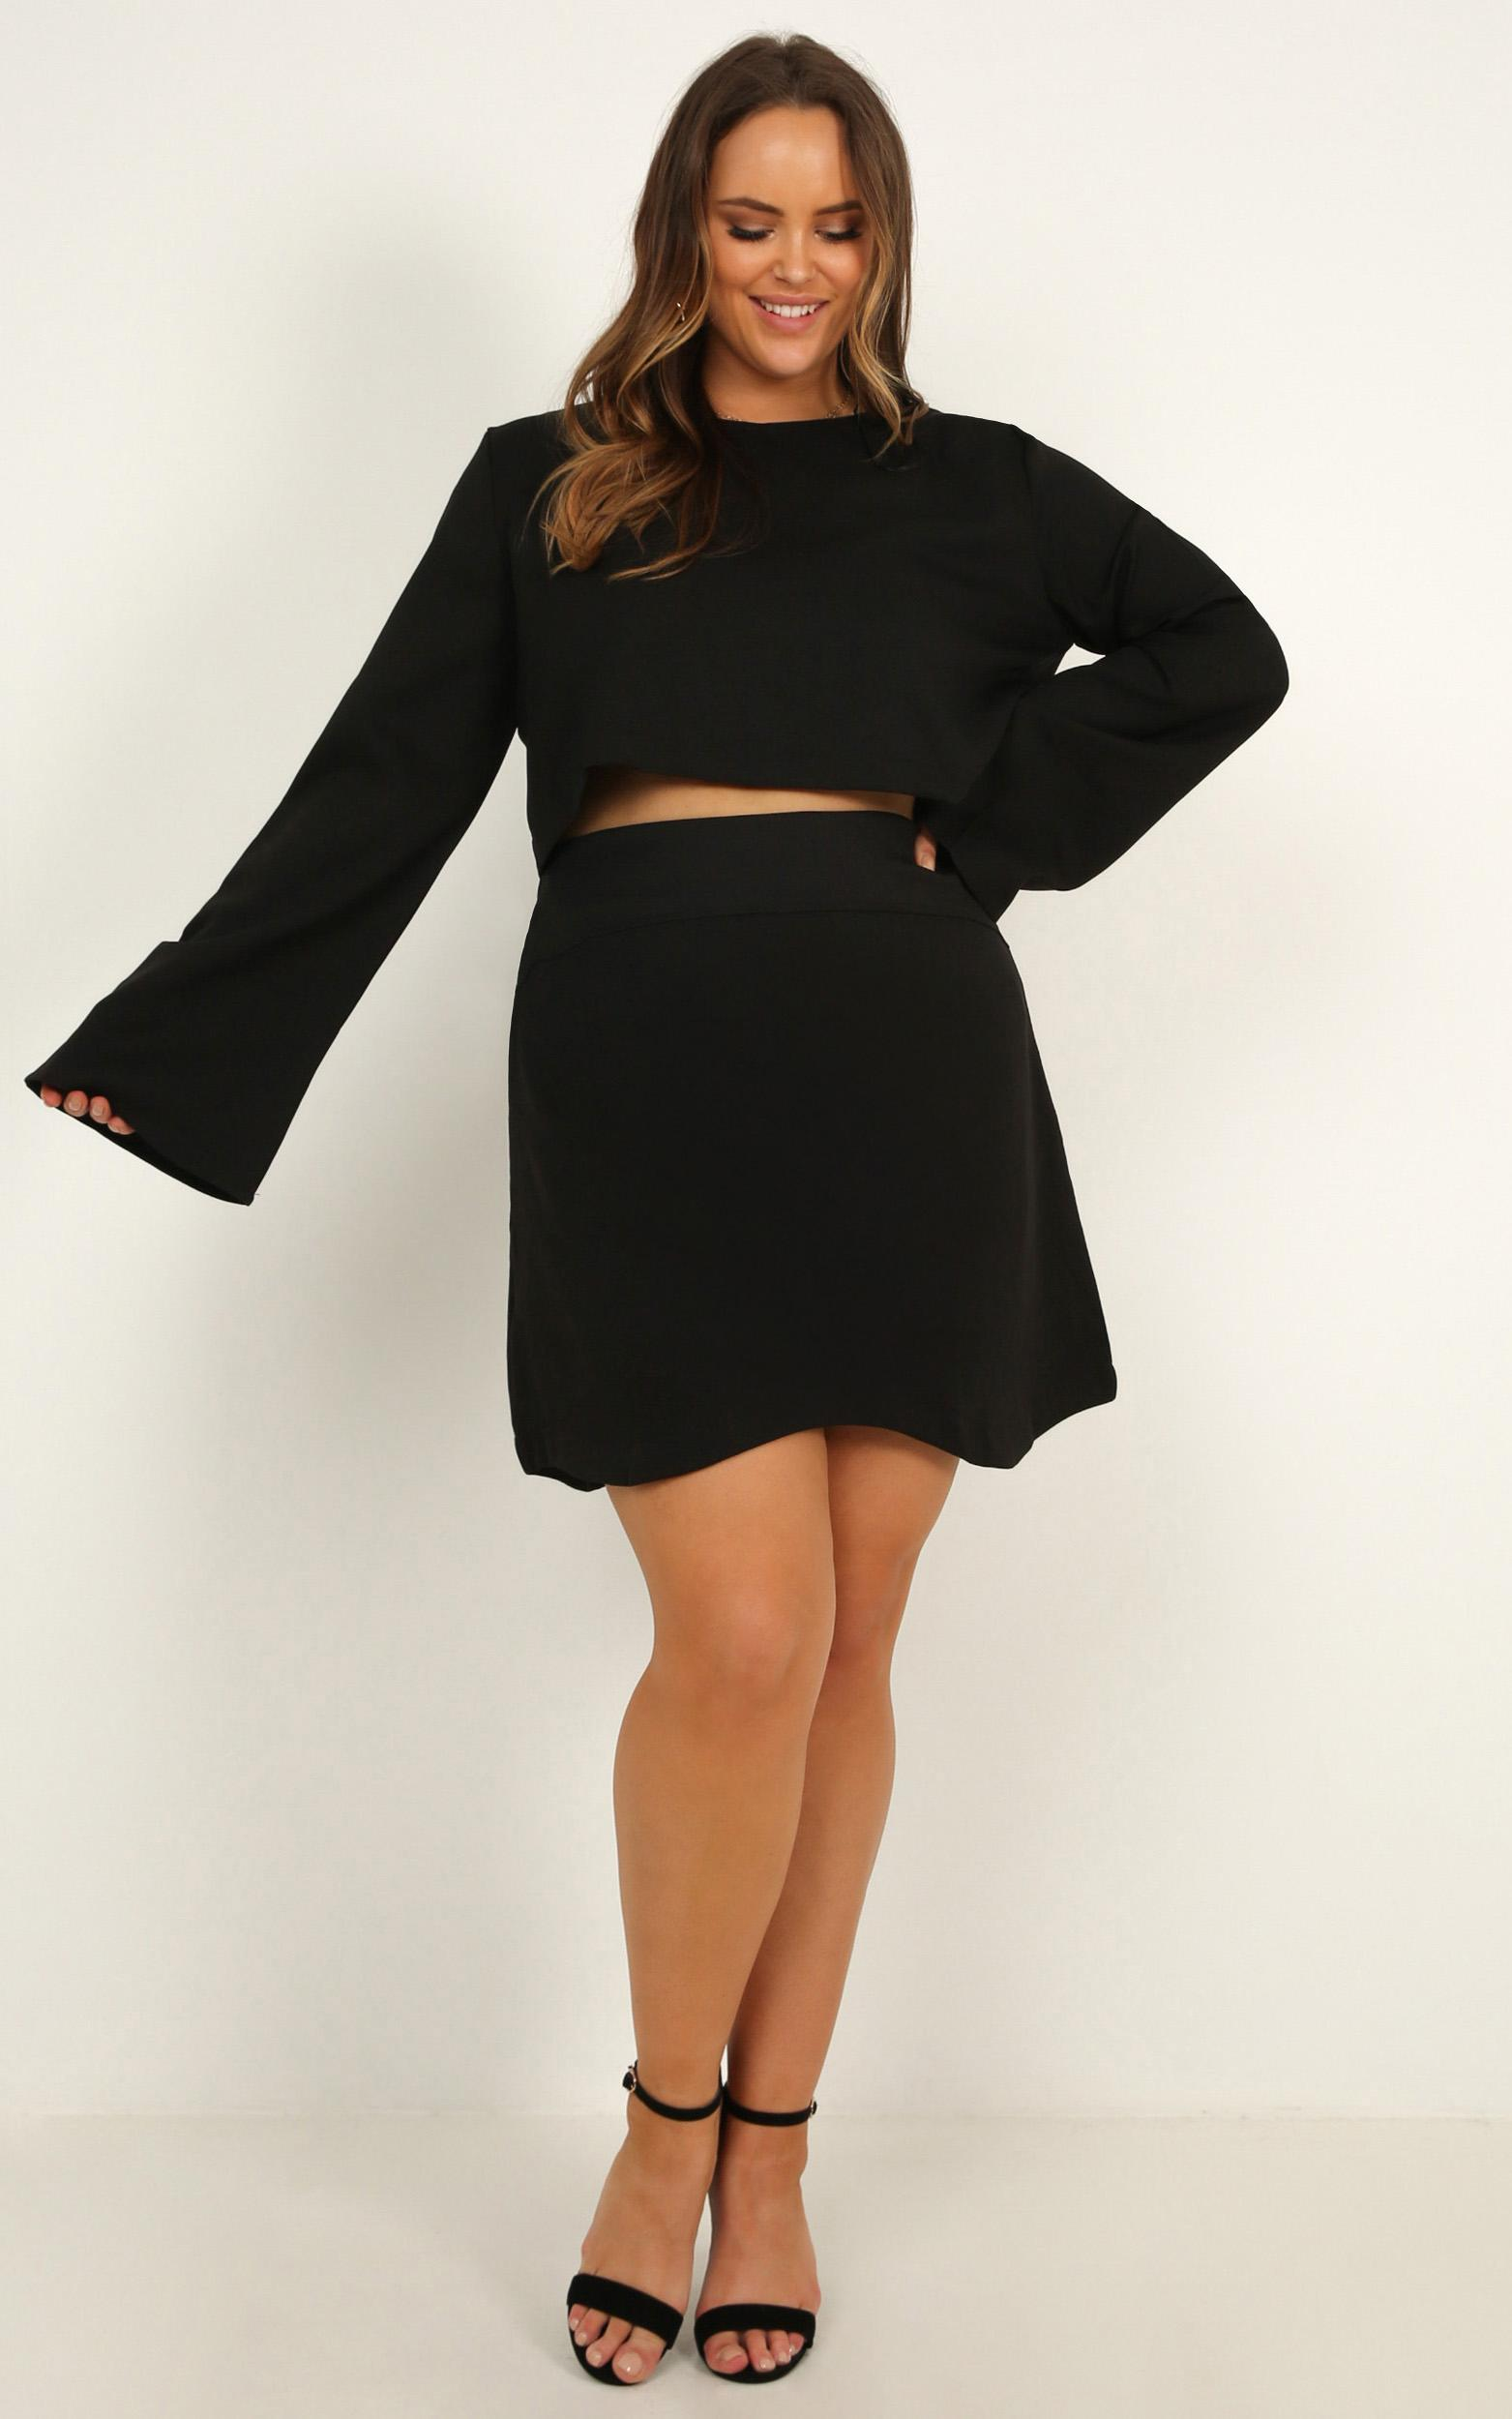 Cut To The Feeling two piece set in black - 20 (XXXXL), Black, hi-res image number null